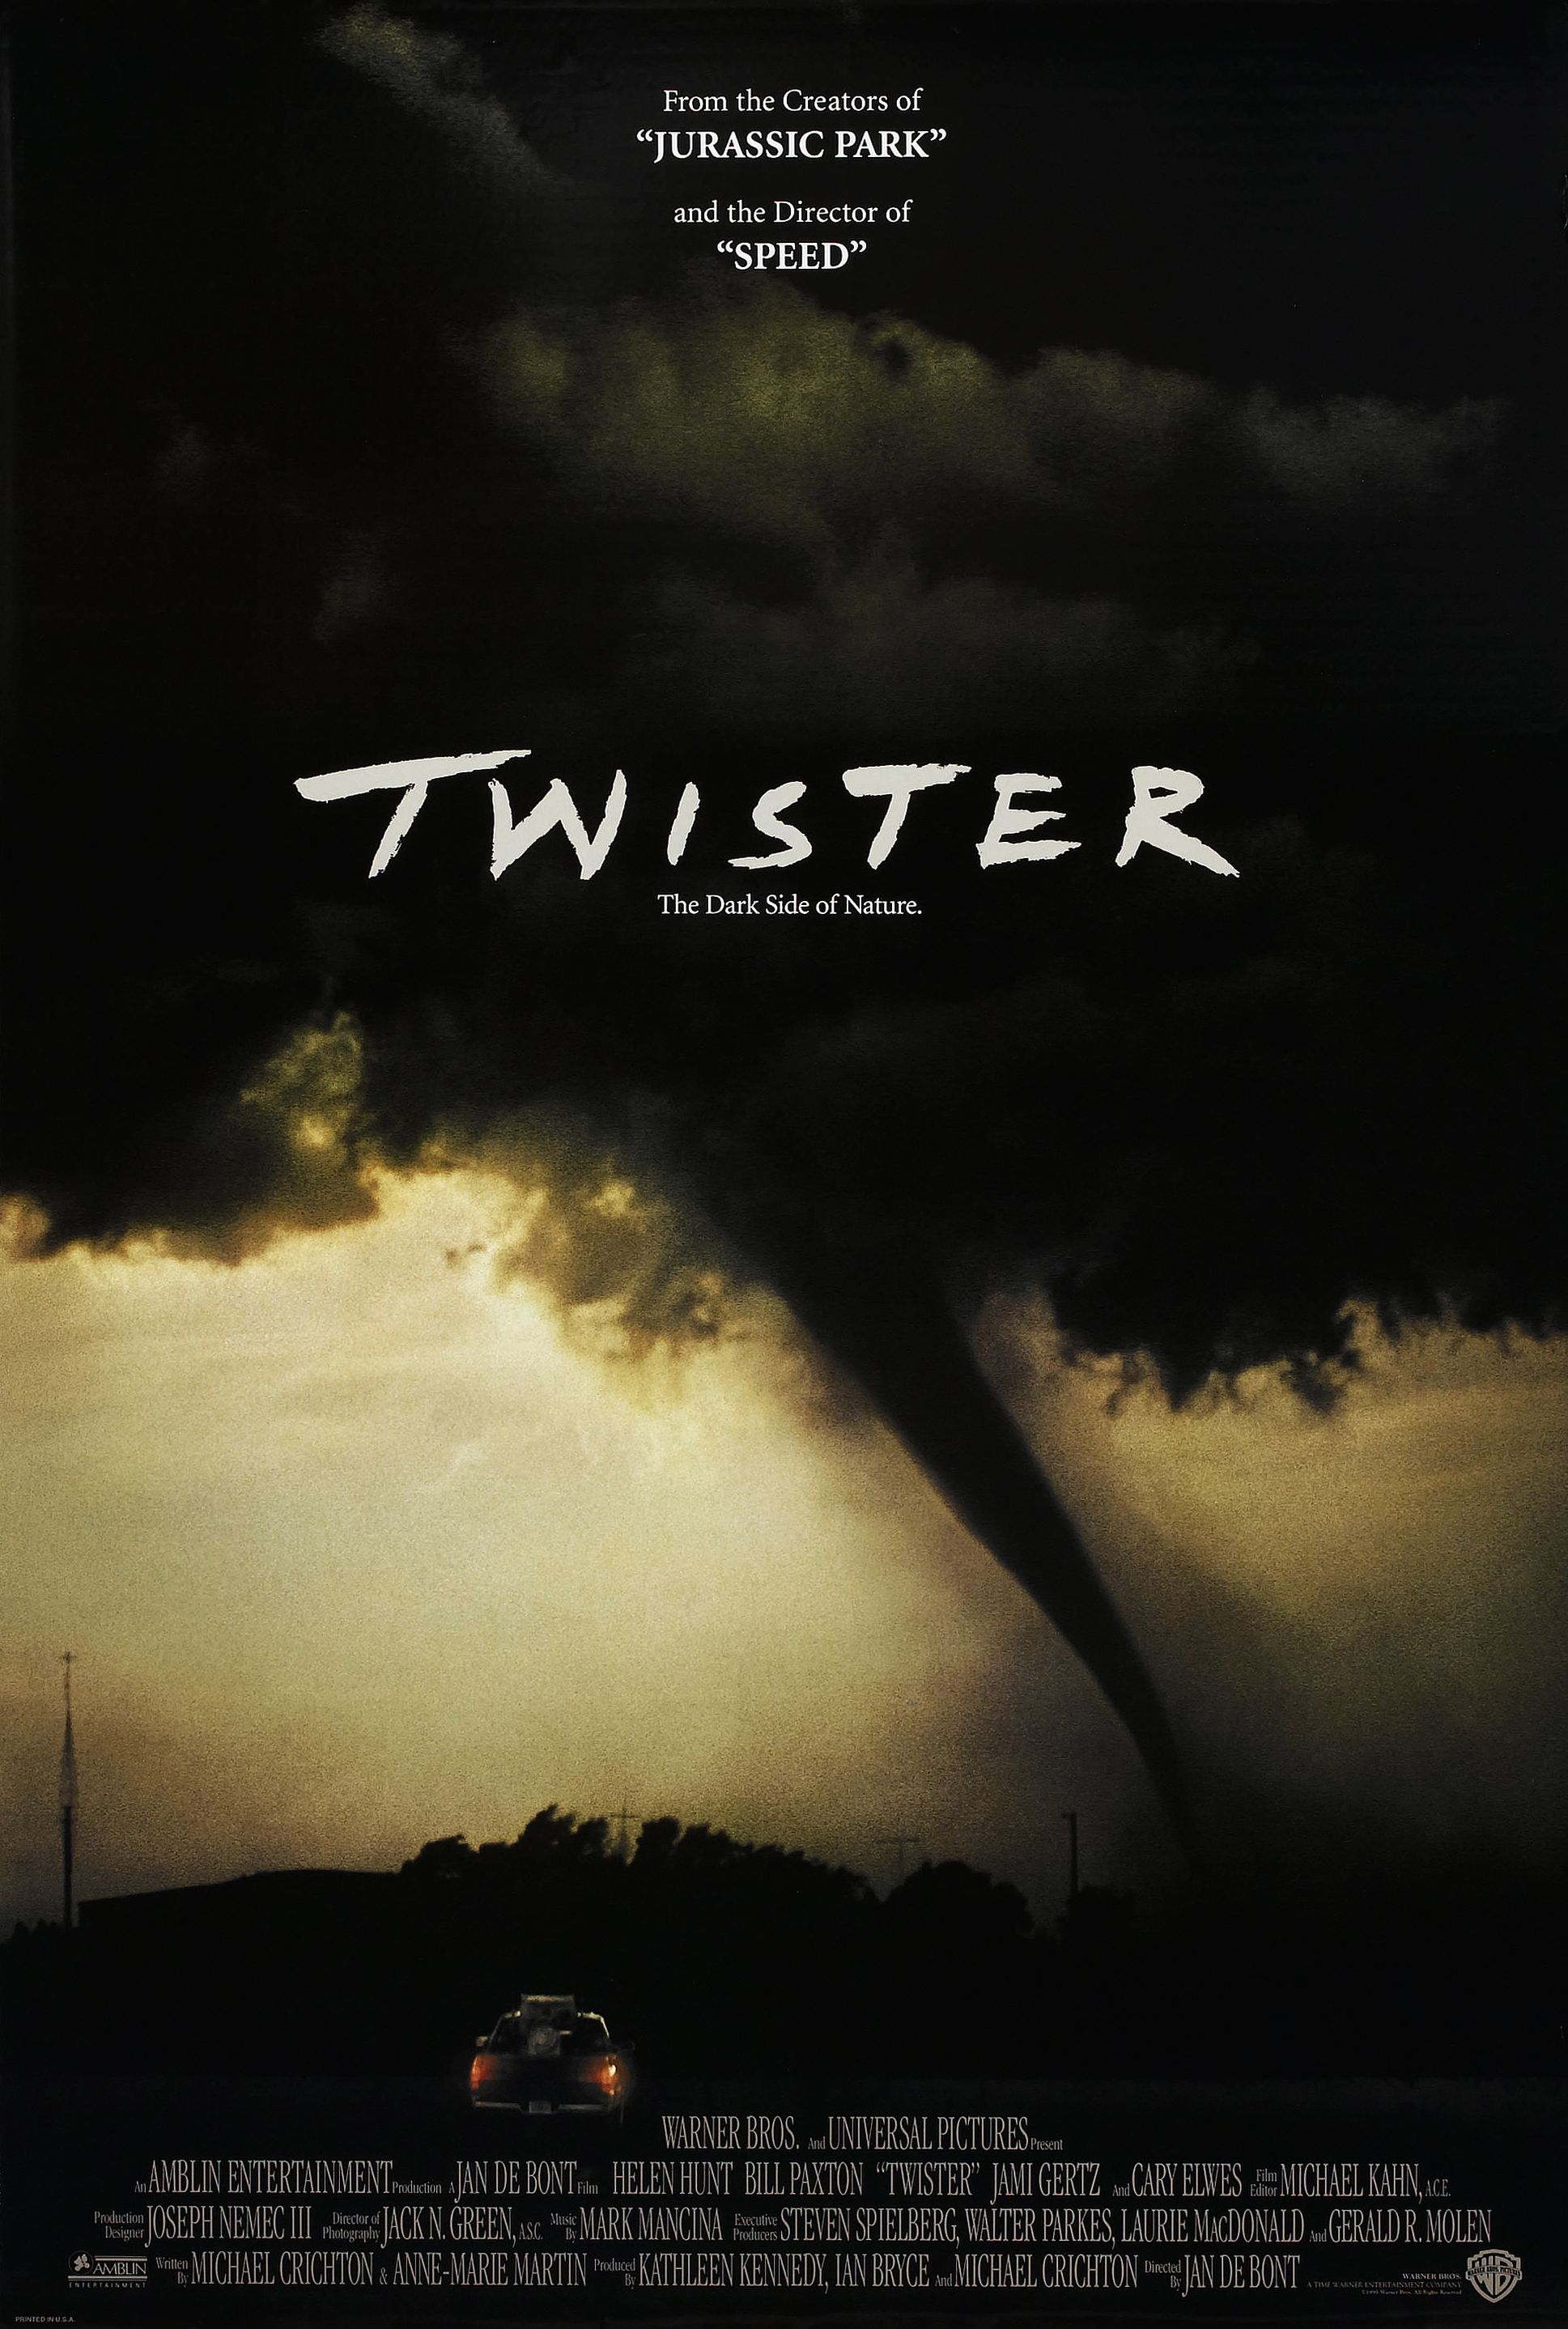 Twister movie posters HD Wallpaper